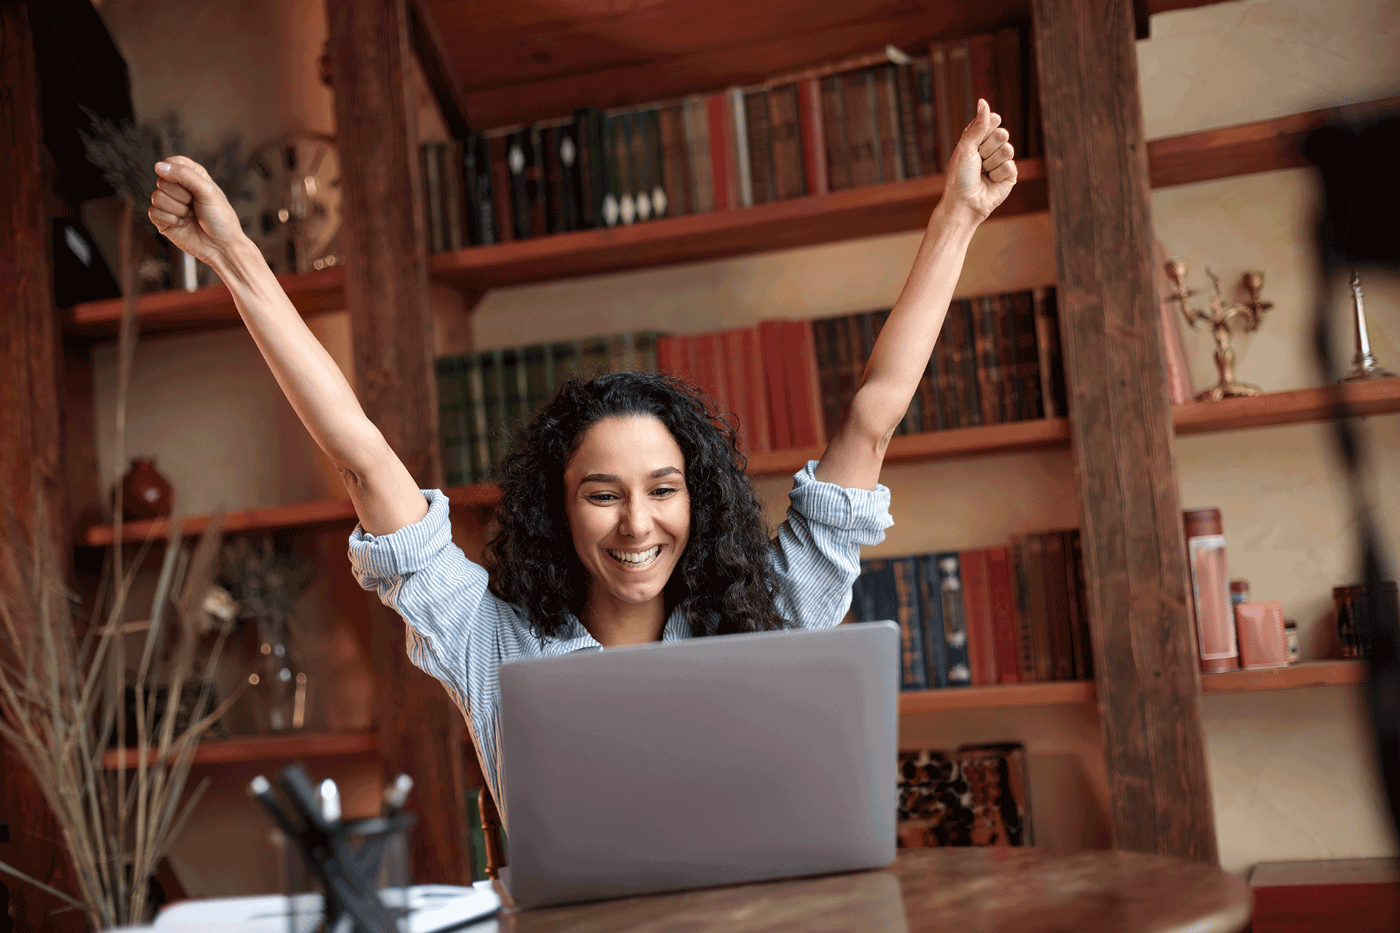 Excited Young Women Achieving Goals at Laptop Computer